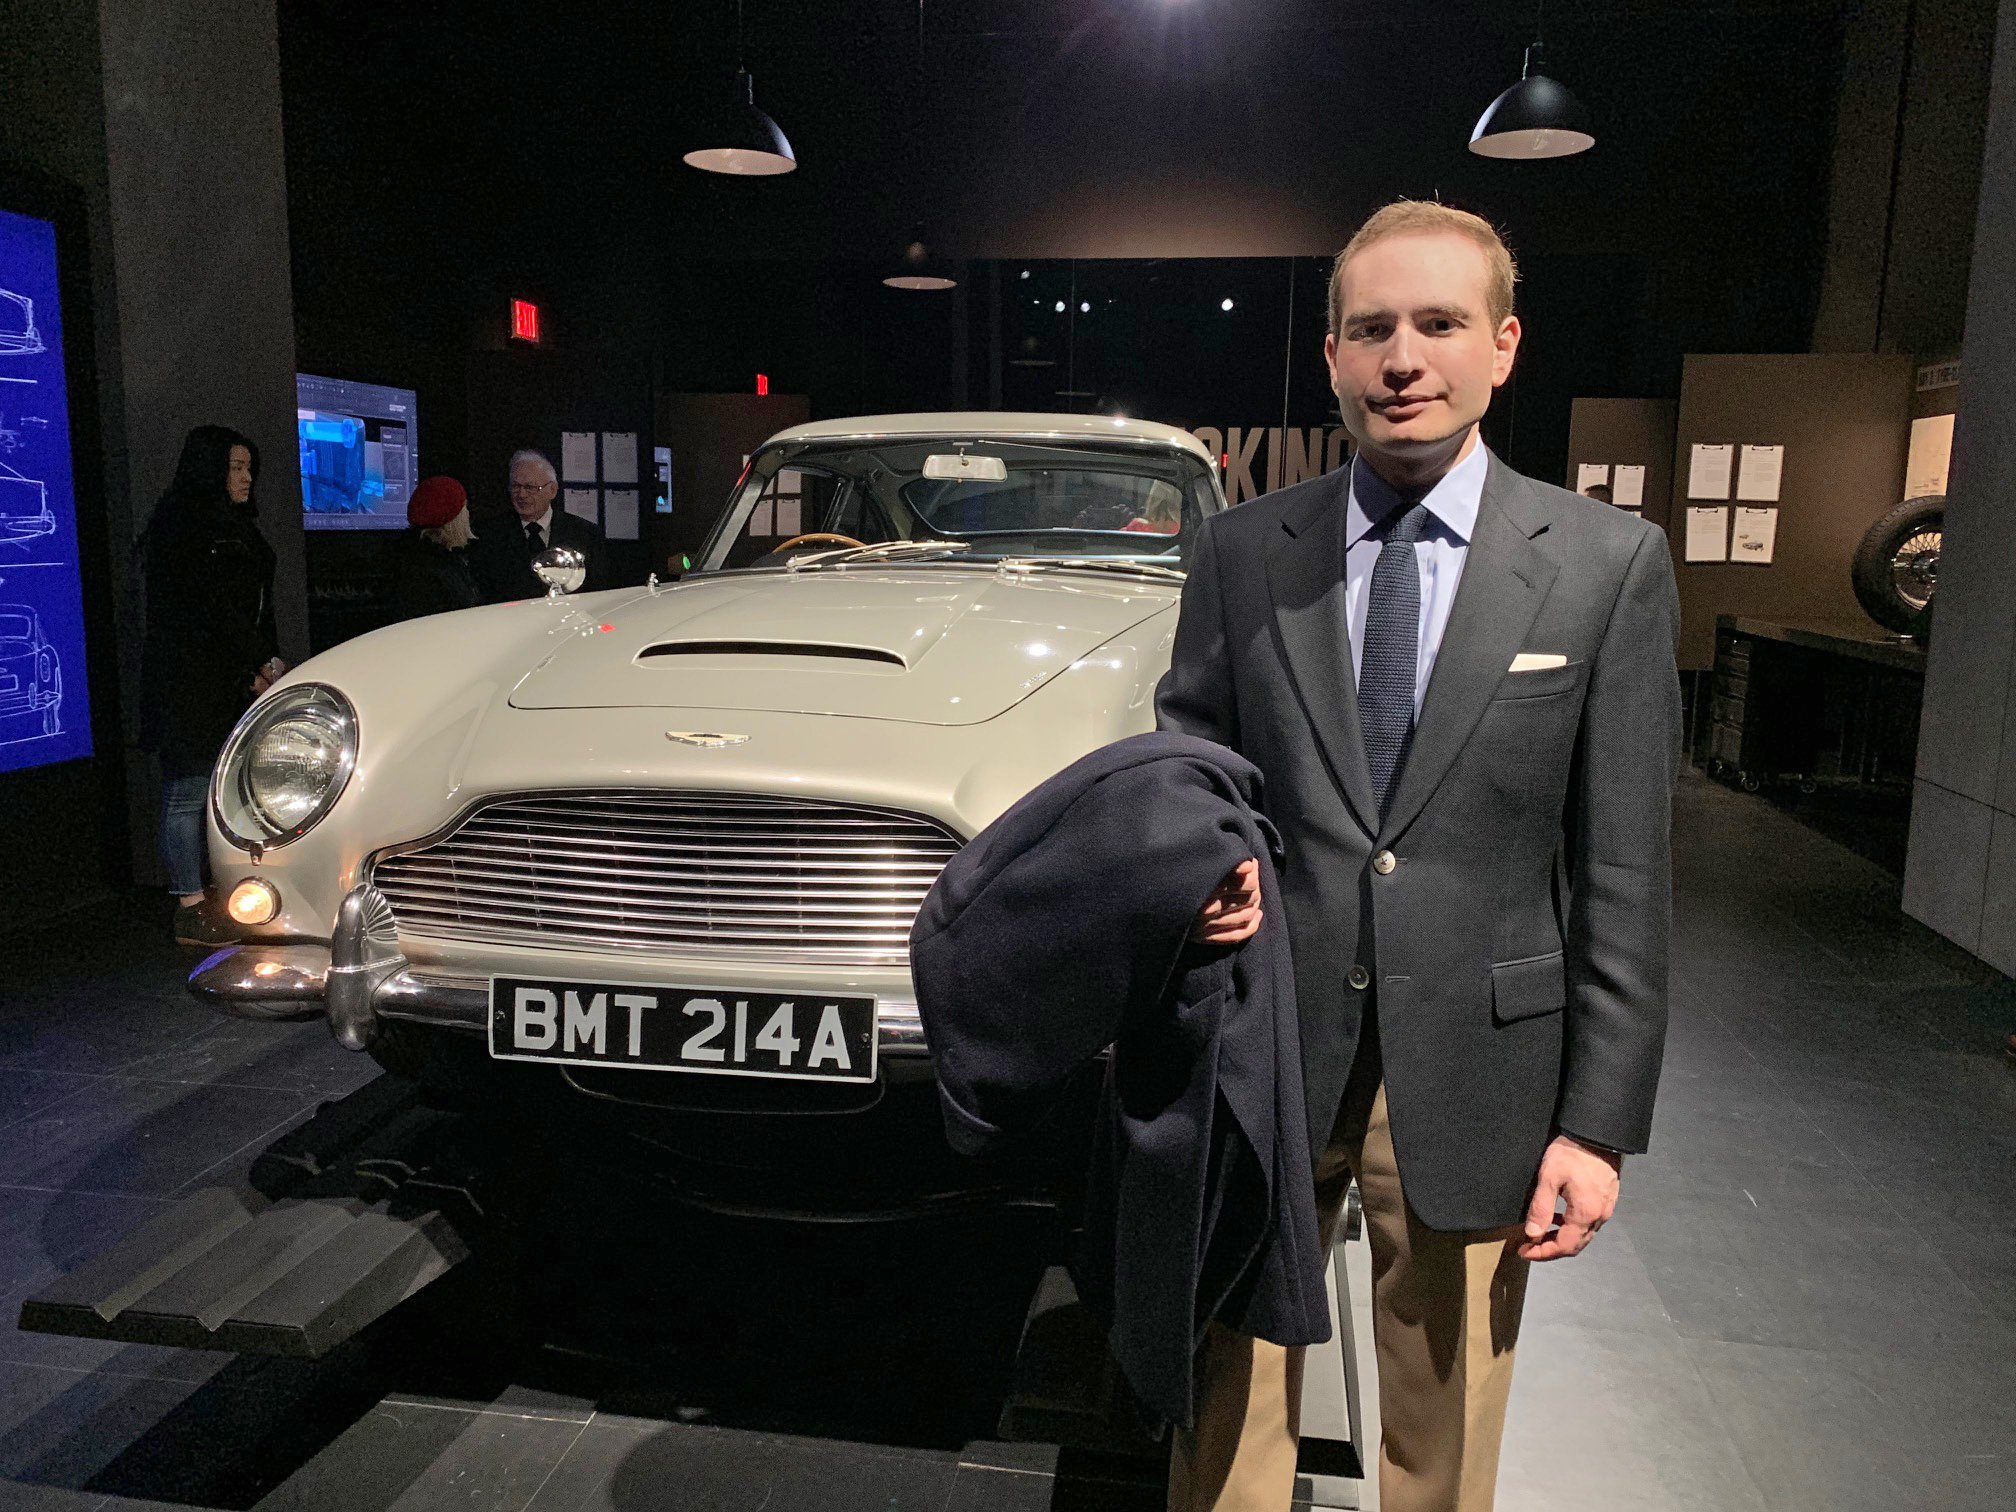 The New York City Bond Experience – The Suits of James Bond